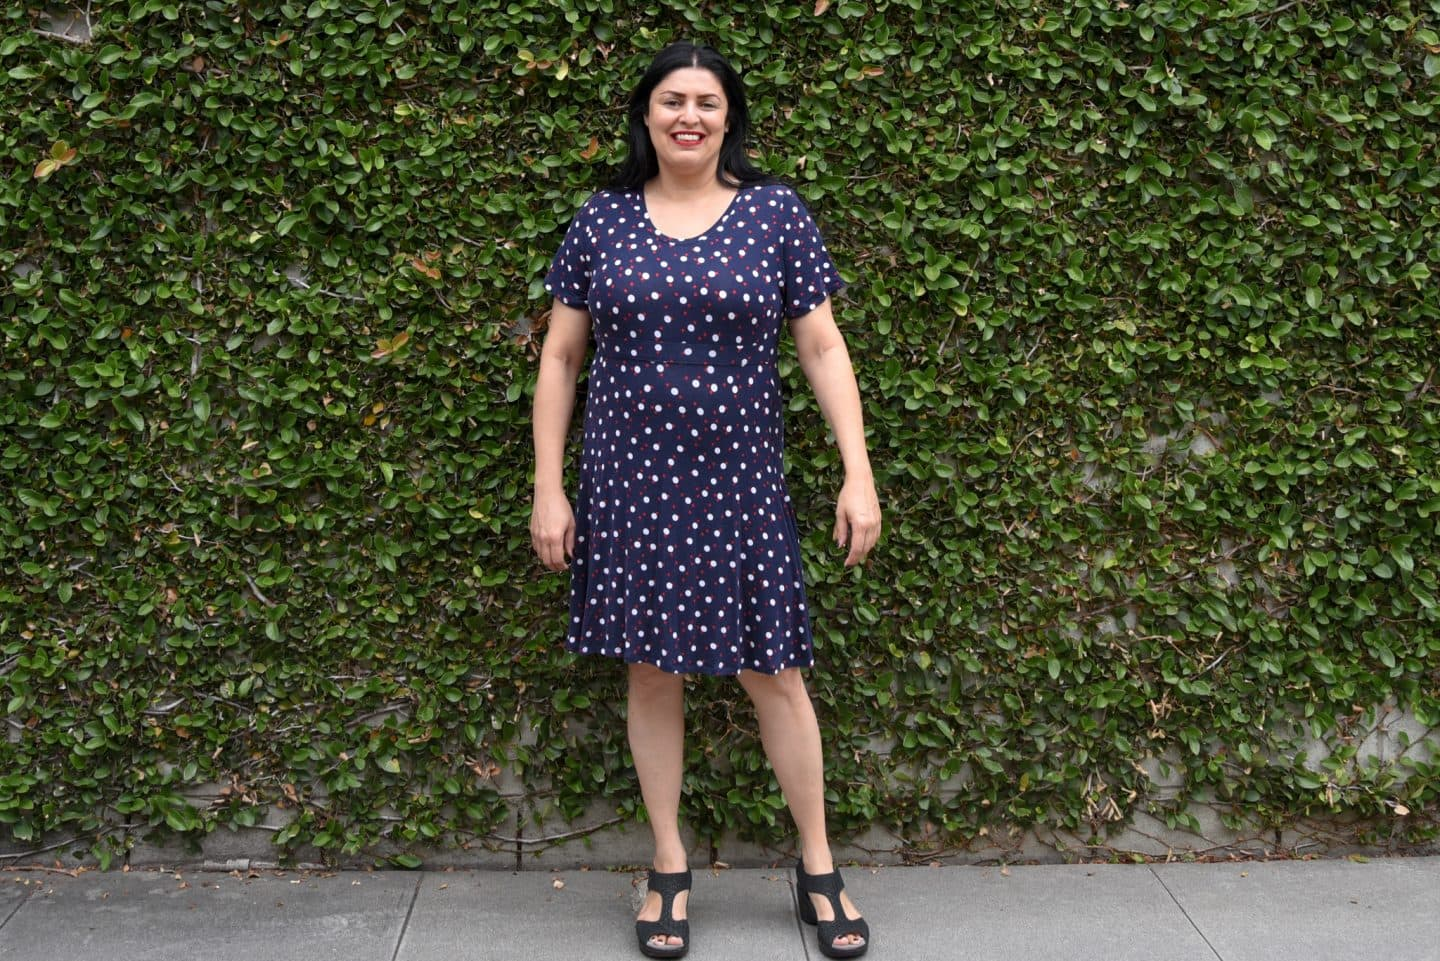 Image of woman with long black hair looking to the right standing in front of a wall covered in vines wearing an empires dress in a dark blue knit with larger white polka dots and smaller red polka dots